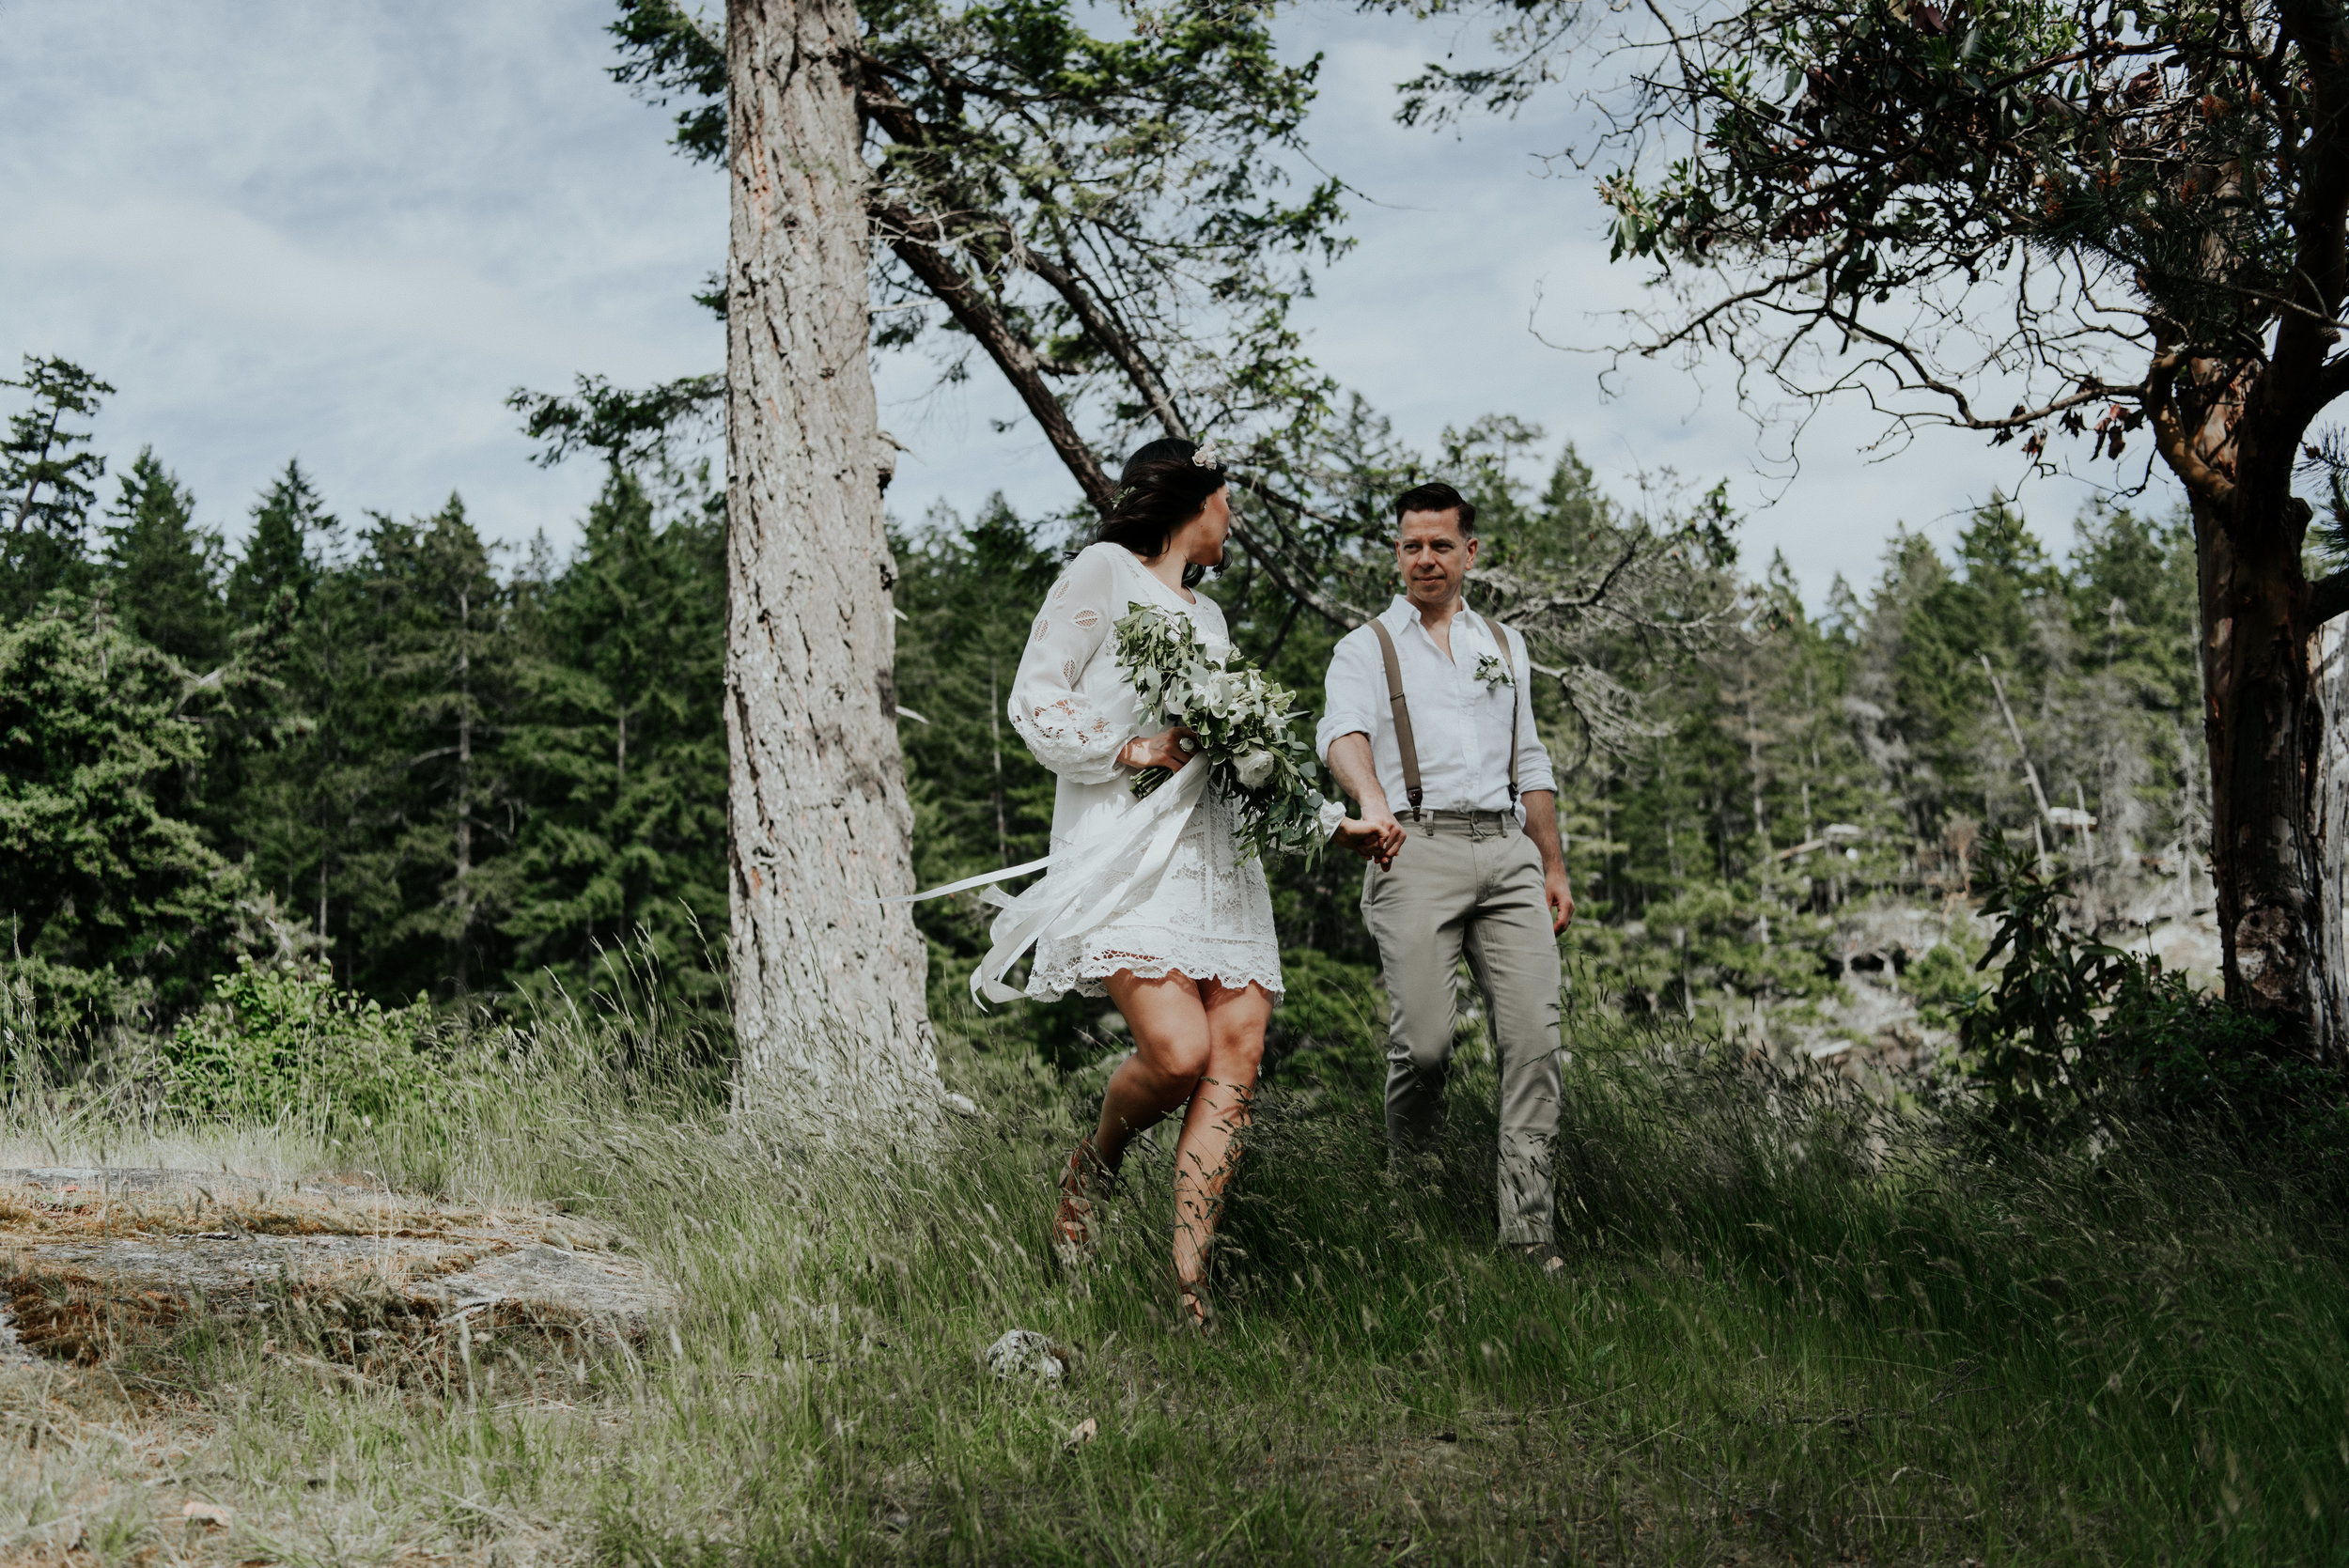 Ashley + Jeff - Rockwater Resort Elopement - Sunshine Coast BC Photographer - Laura Olson Photography-4143.jpg